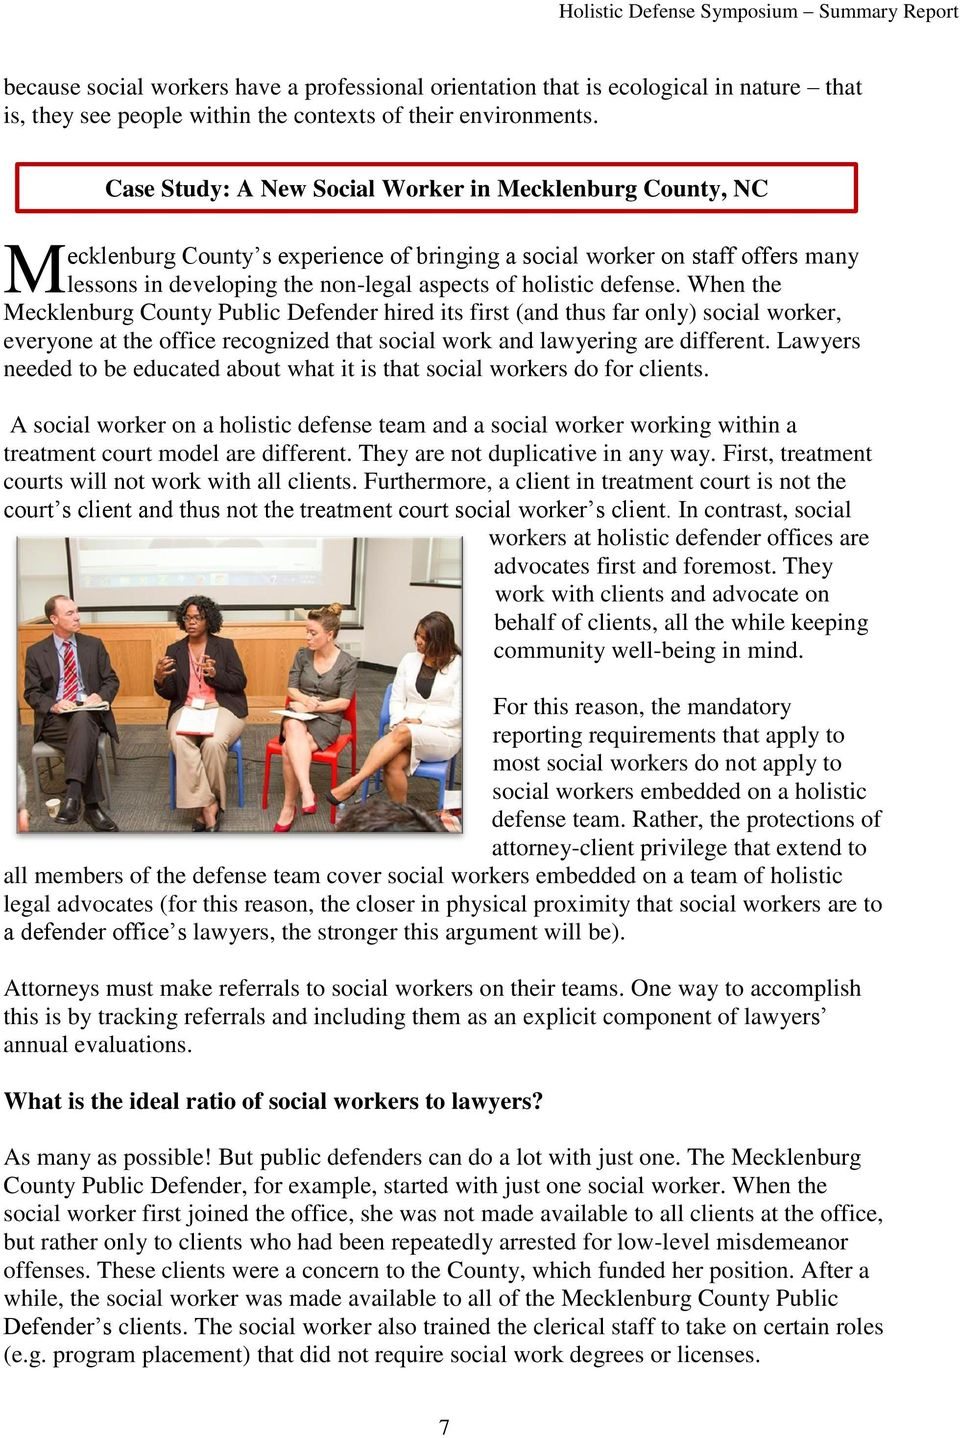 defense. When the Mecklenburg County Public Defender hired its first (and thus far only) social worker, everyone at the office recognized that social work and lawyering are different.